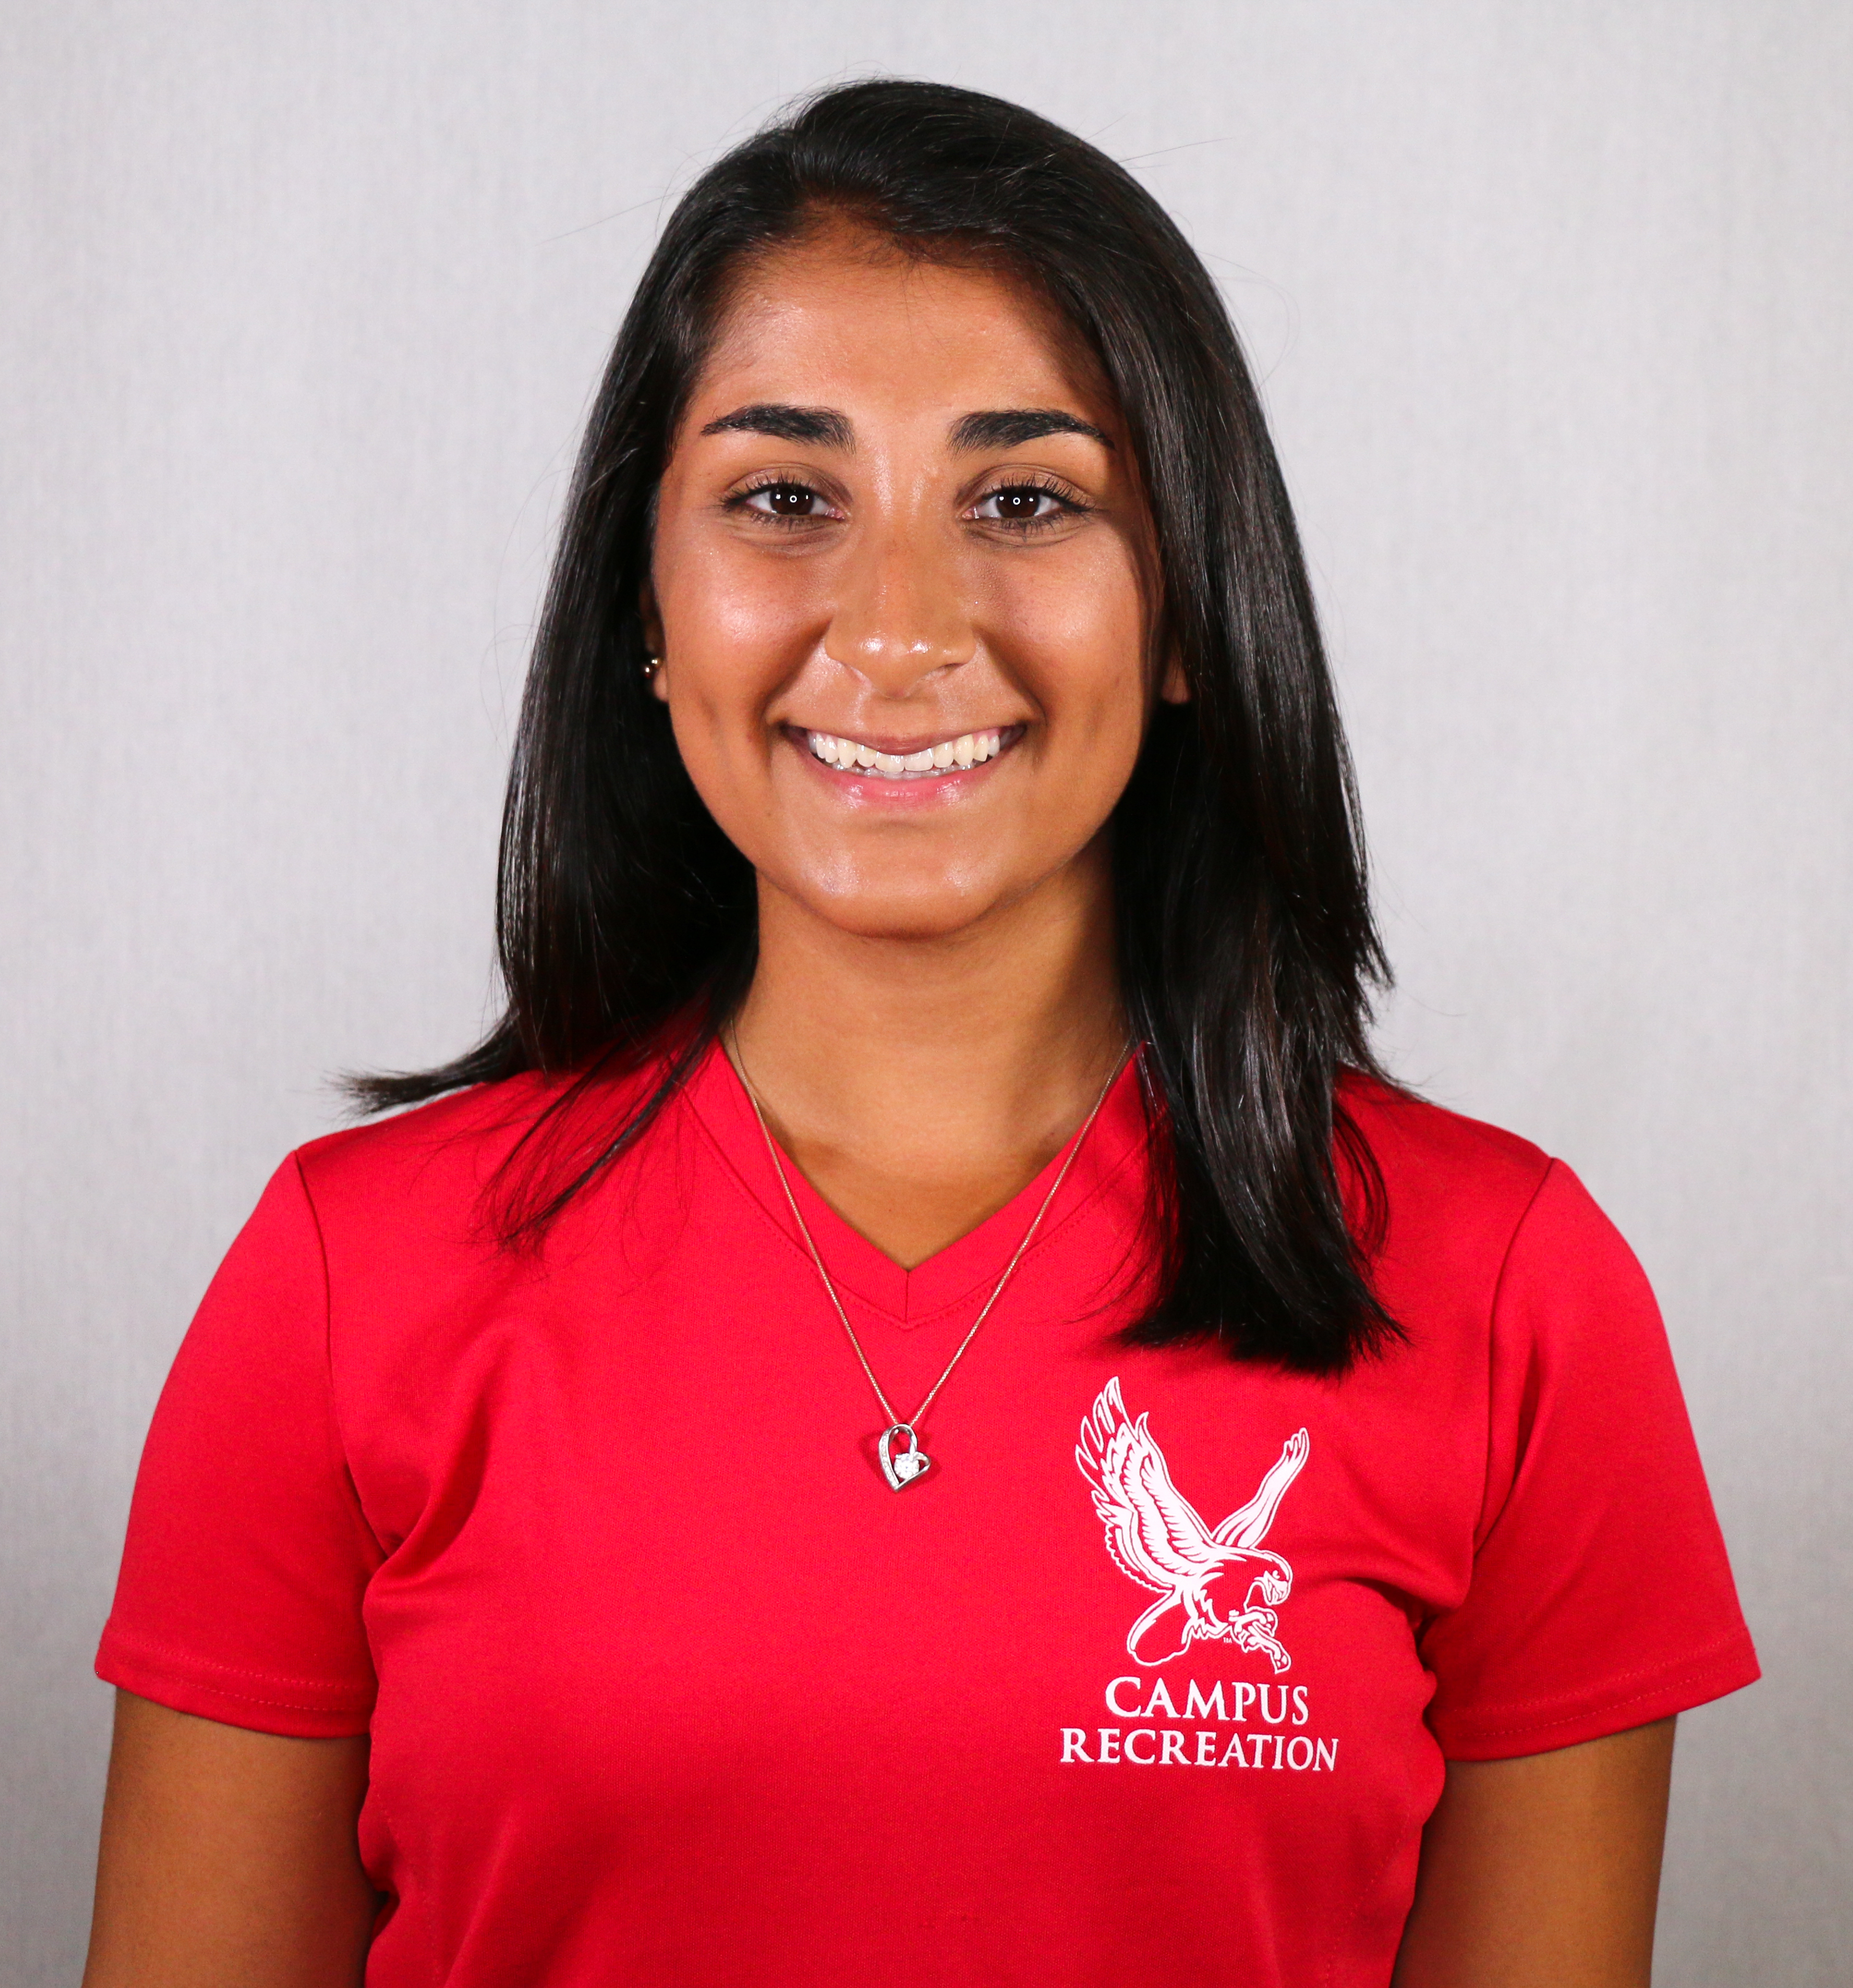 Headshot of Rachel DeFelice wearing a red, Campus Recreation t-shirt.